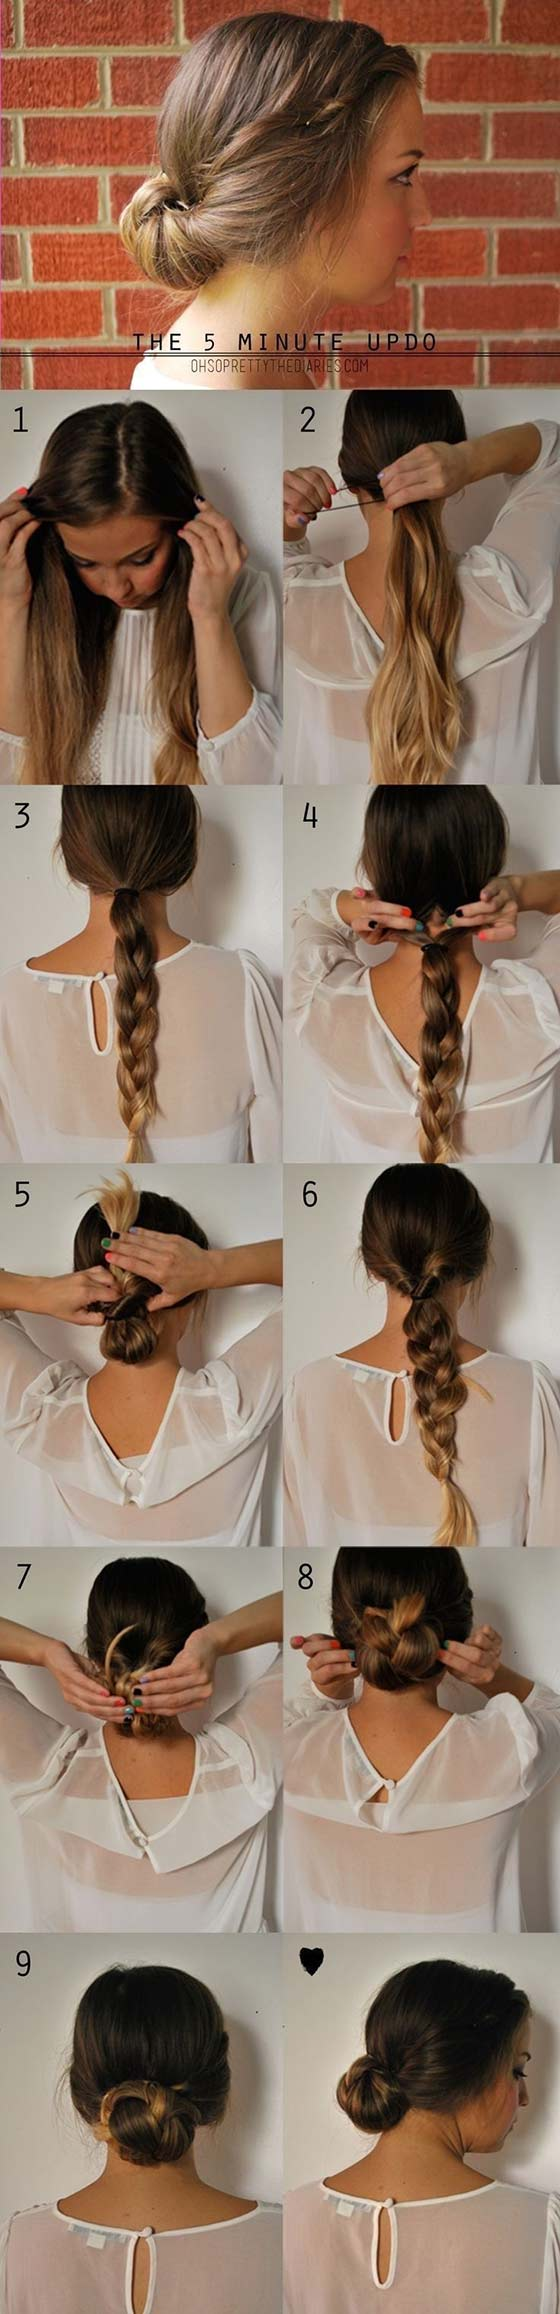 The Braided Hair Updo